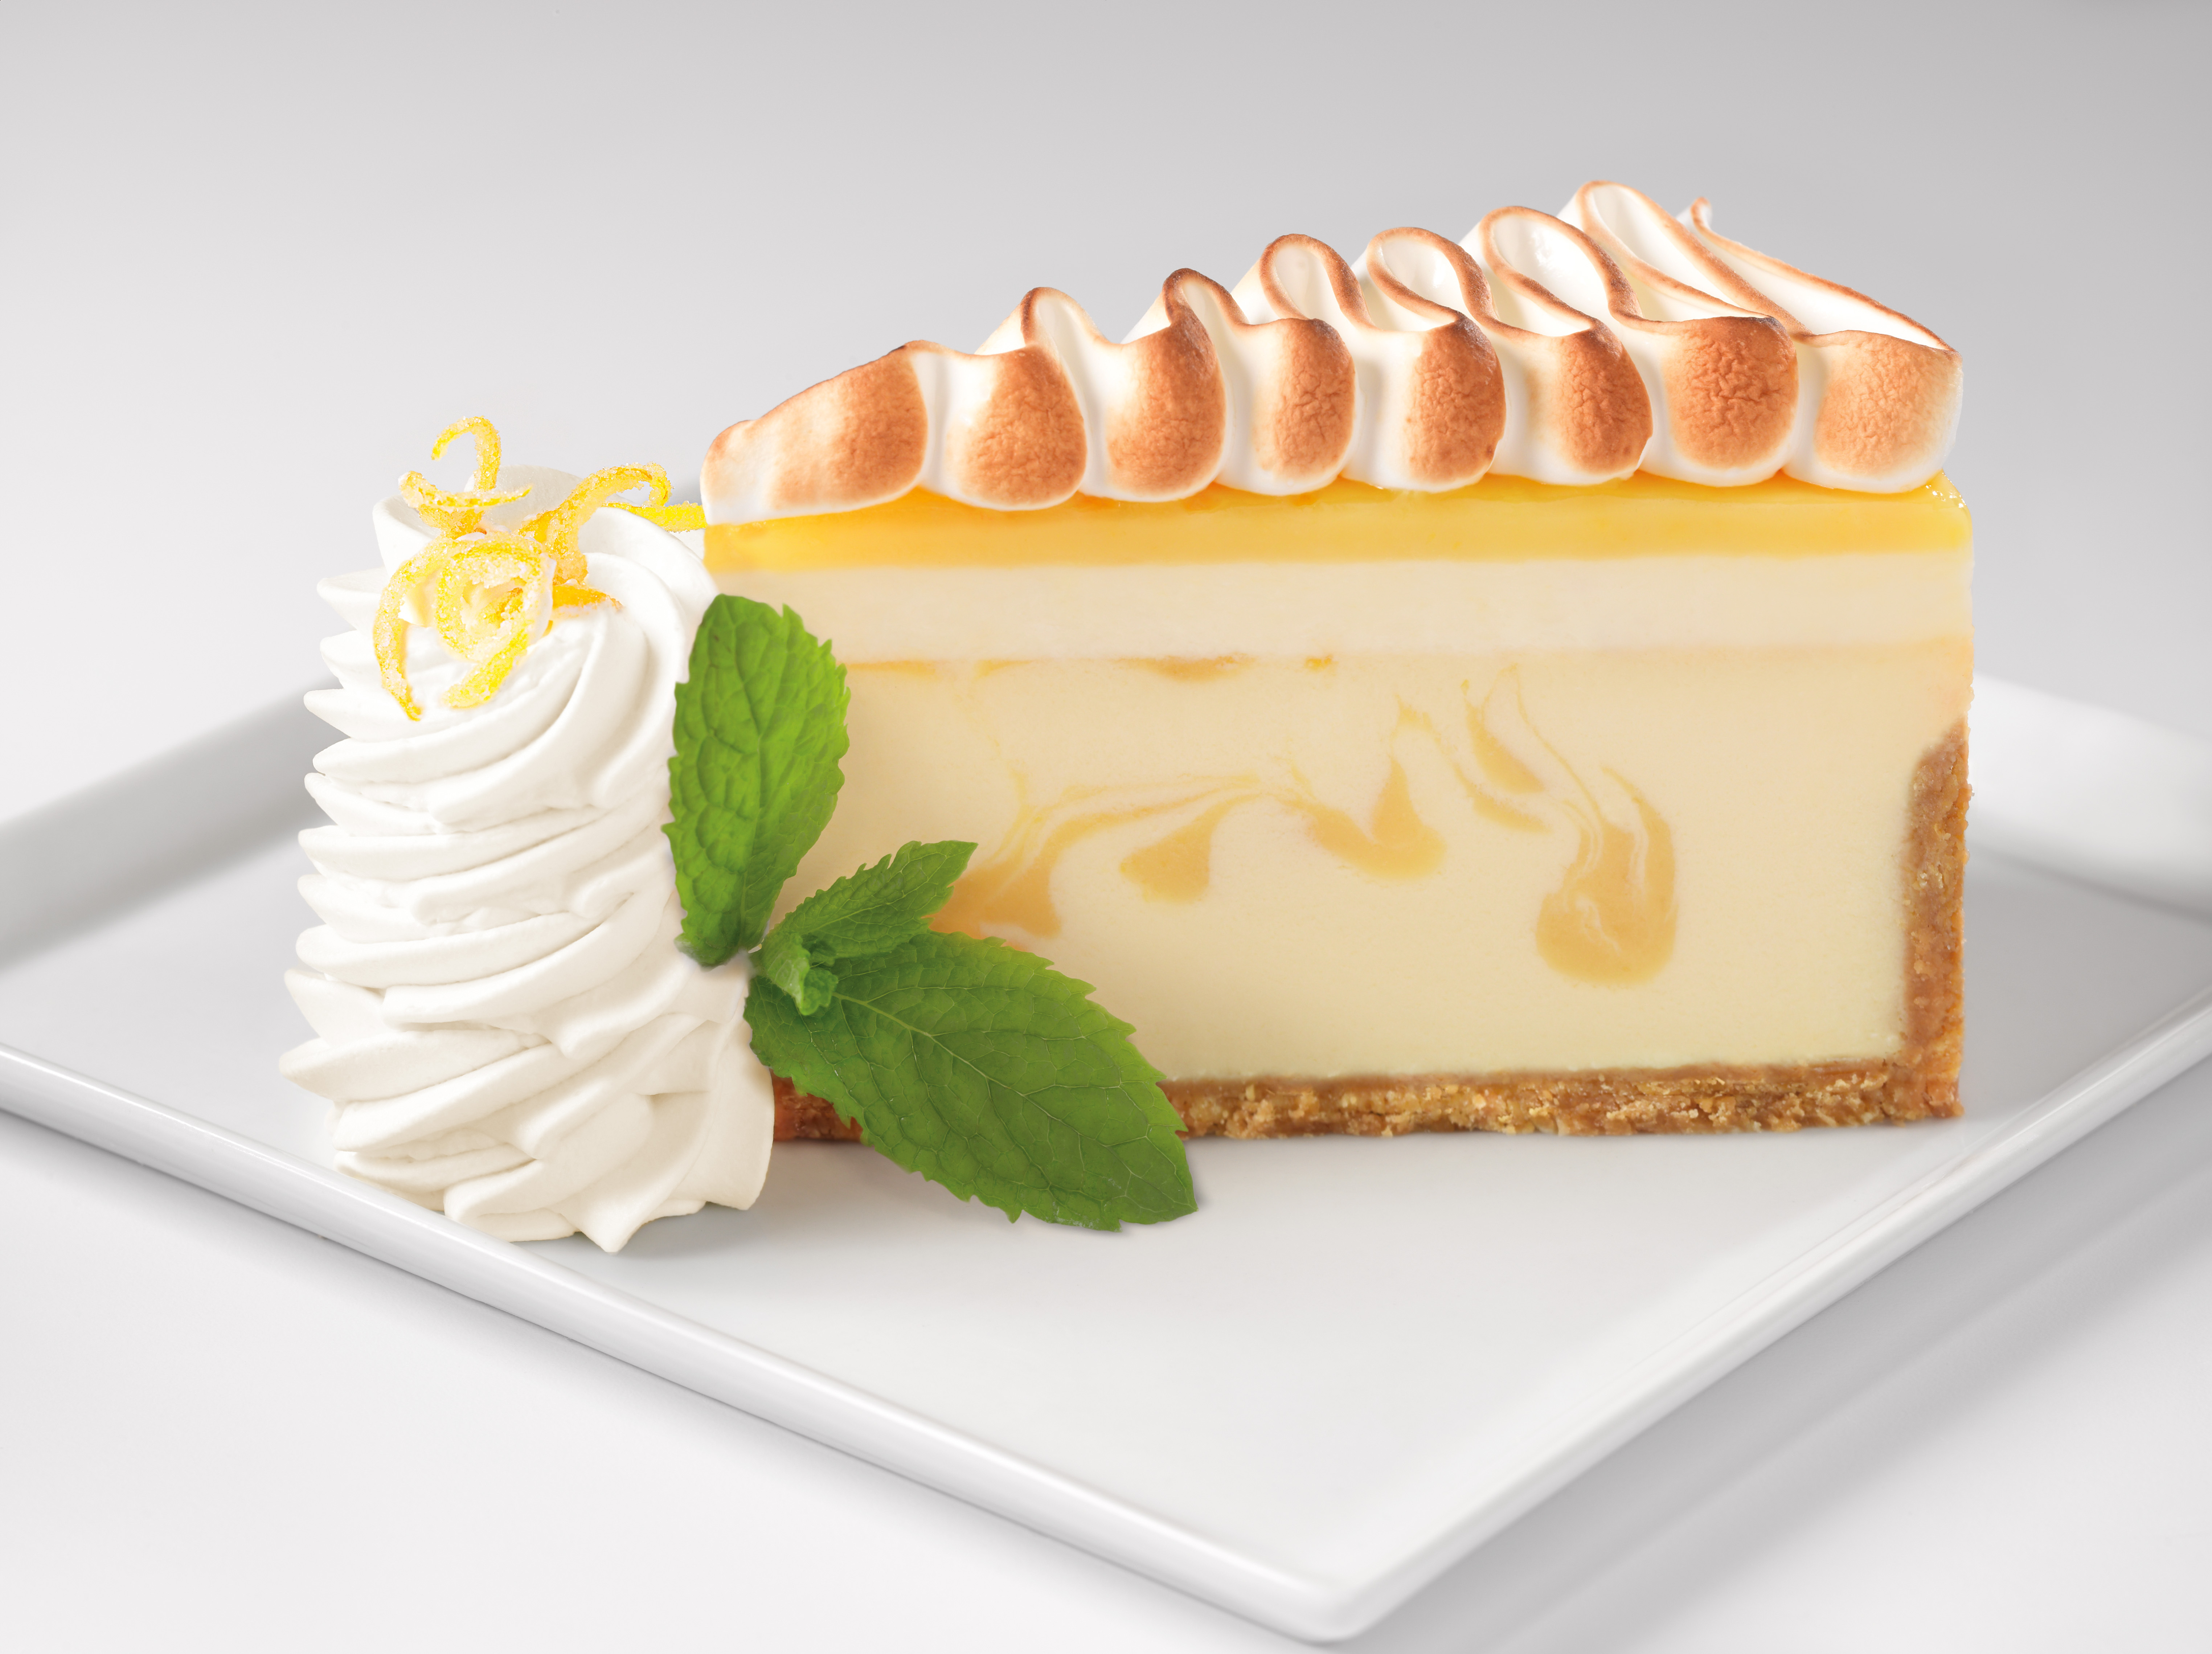 The Cheesecake Factory introduces its newest cheesecake flavor Lemon Meringue Cheesecake. (Photo: Business Wire)